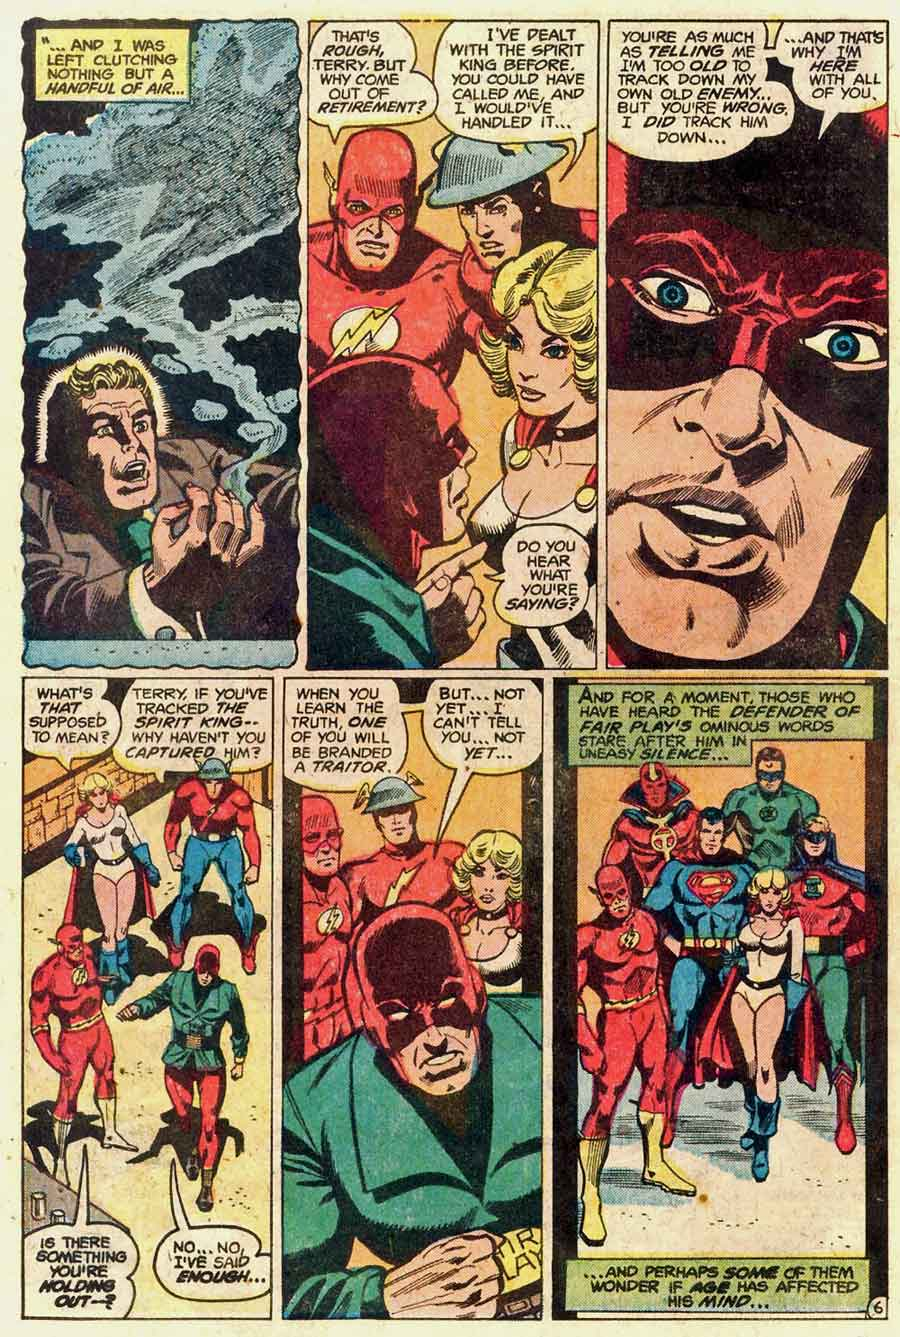 Justice League of America #171 by Gerry Conway, Dick Dillin, and Frank McLaughlin